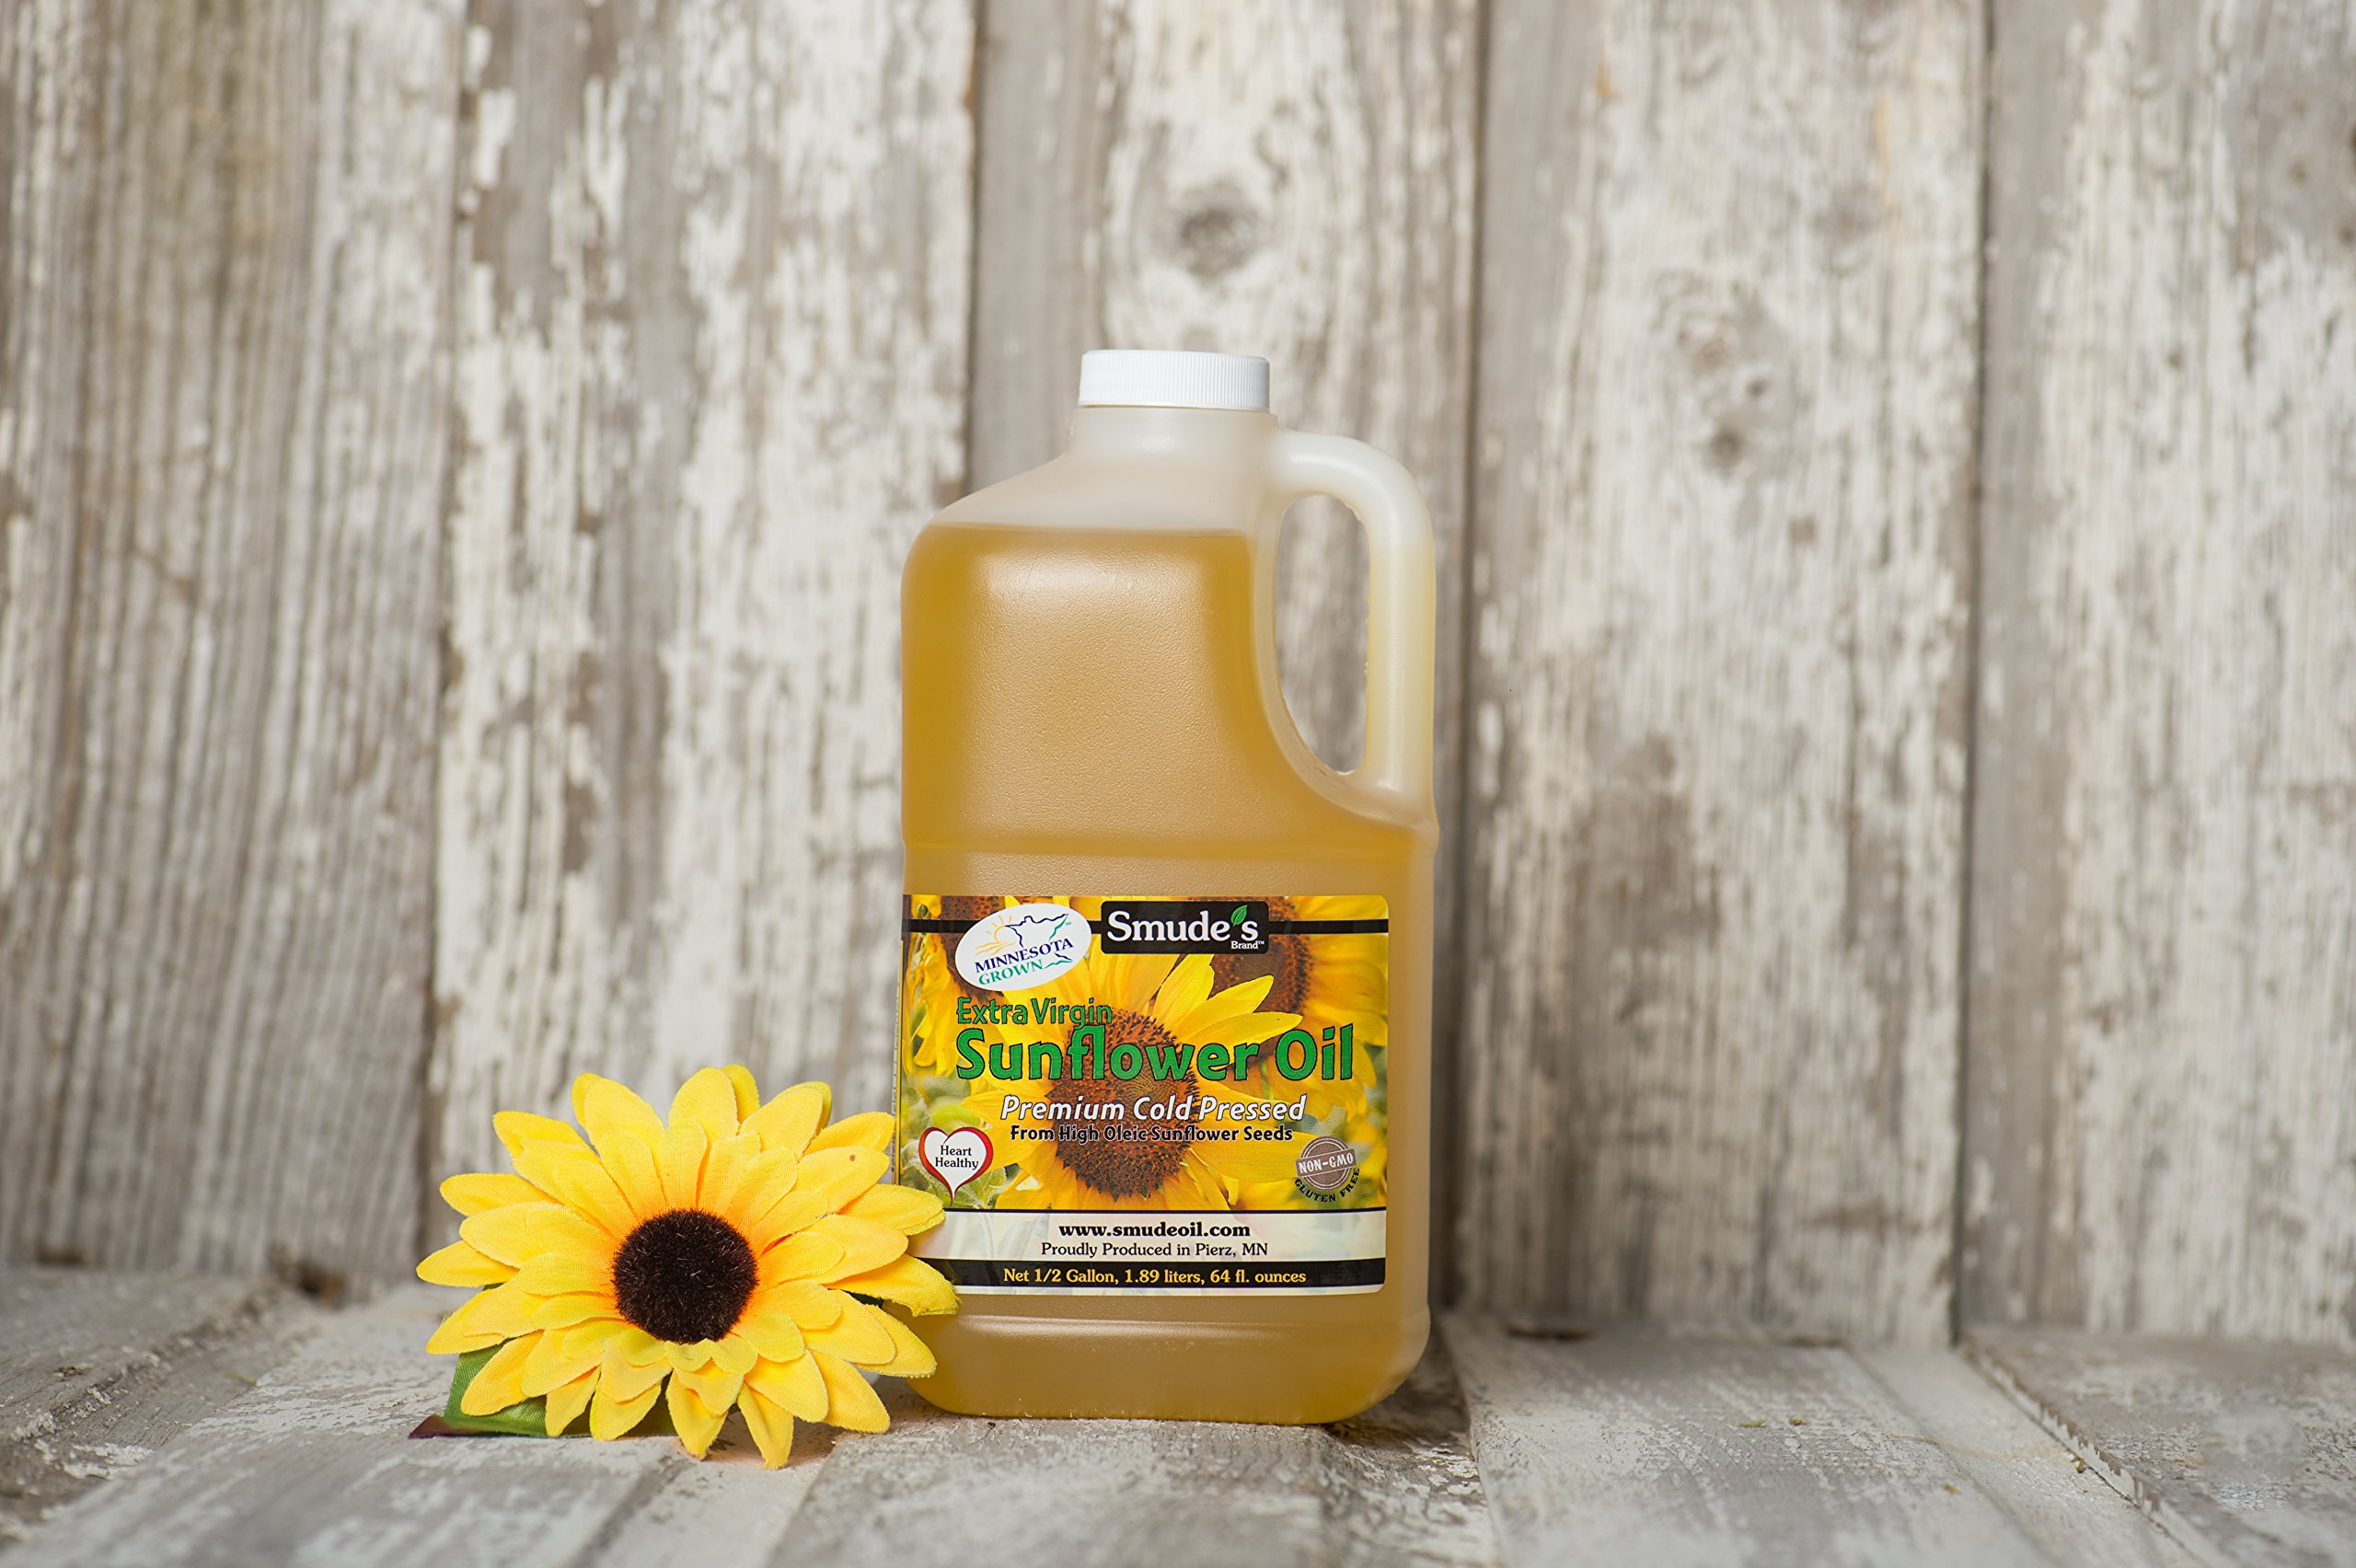 Smude Sunflower Oil 1/2 Gallon Plastic [Cold Pressed, All Natural, NonGMO Cooking Oil]